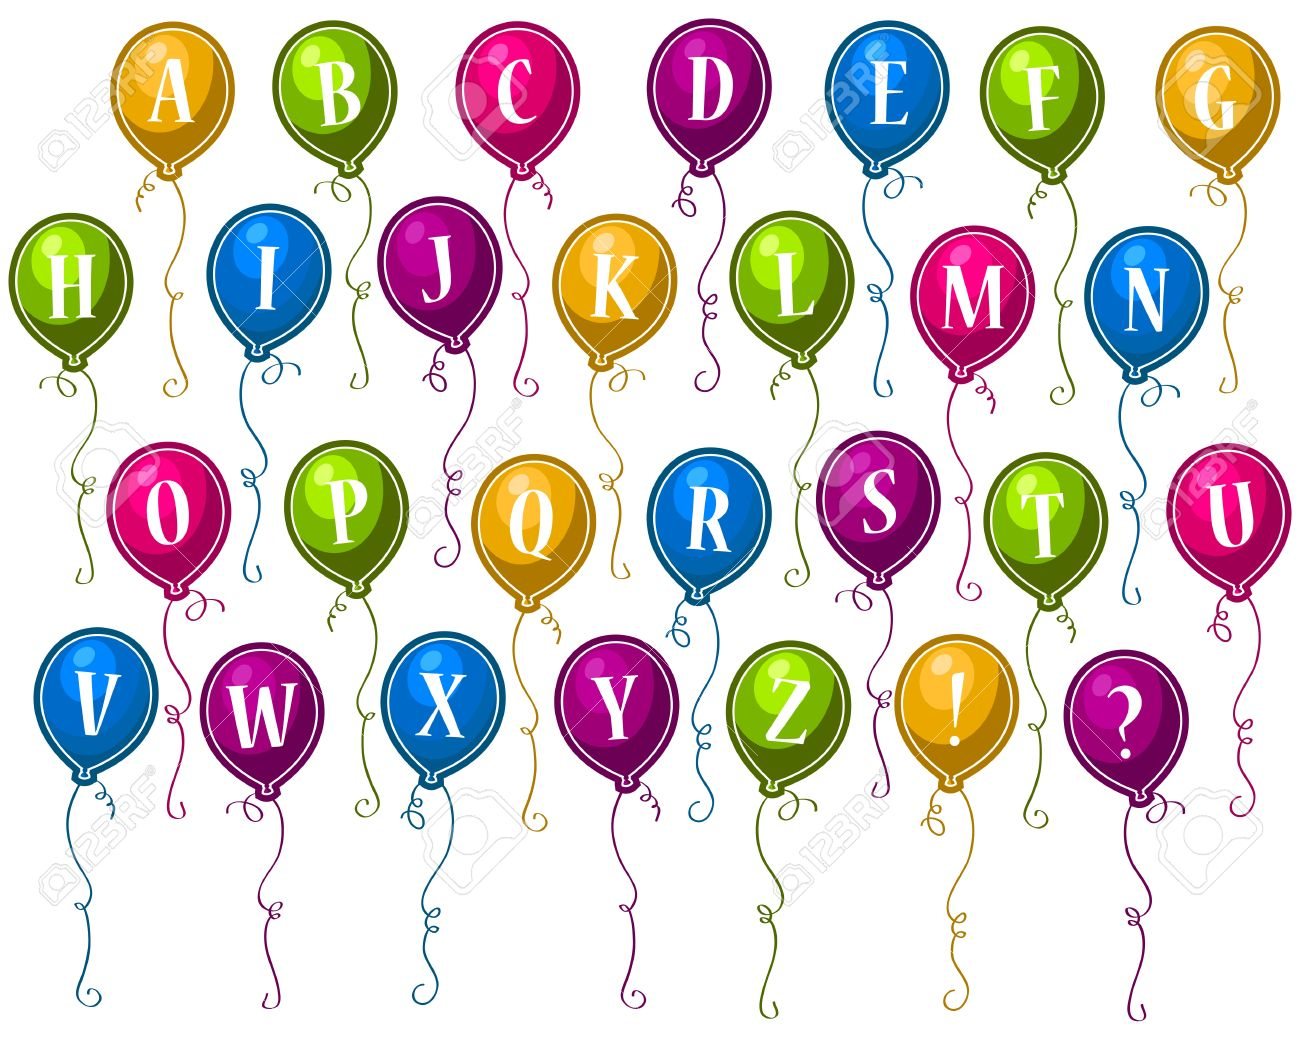 Alphabet Happy Birthday Balloons Stock Vector - 10857001